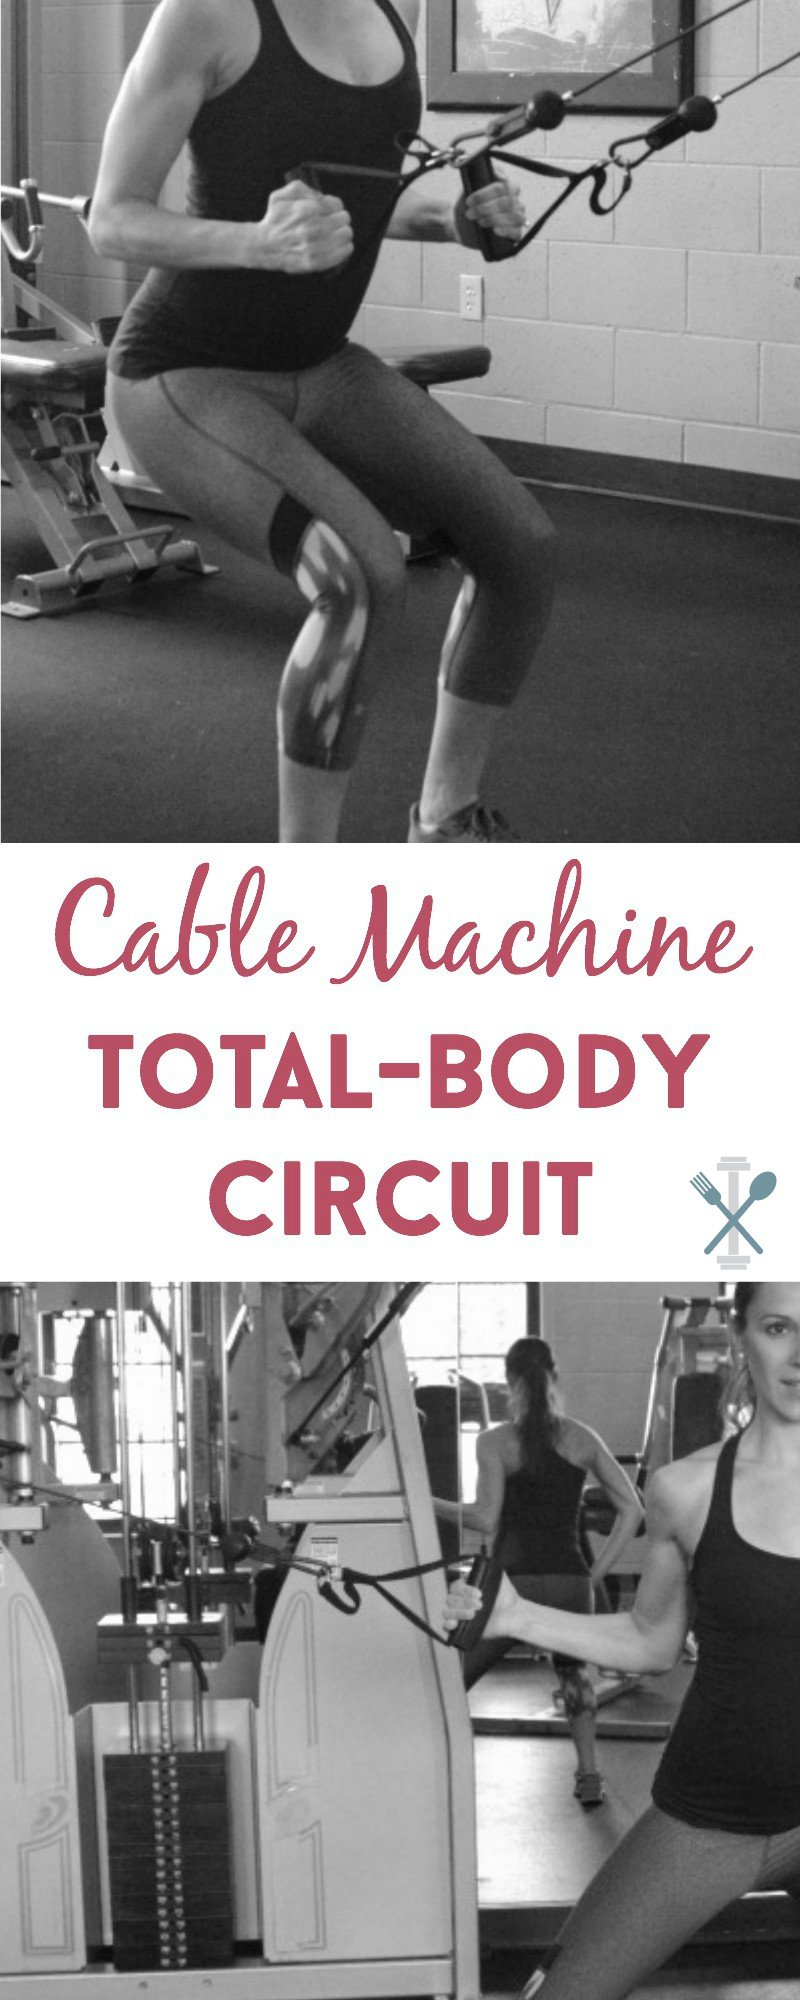 Cable Machine Total Body Circuit Workouts And Tagged Workout Full This Uses The To Target Multiple Muscle Groups For An